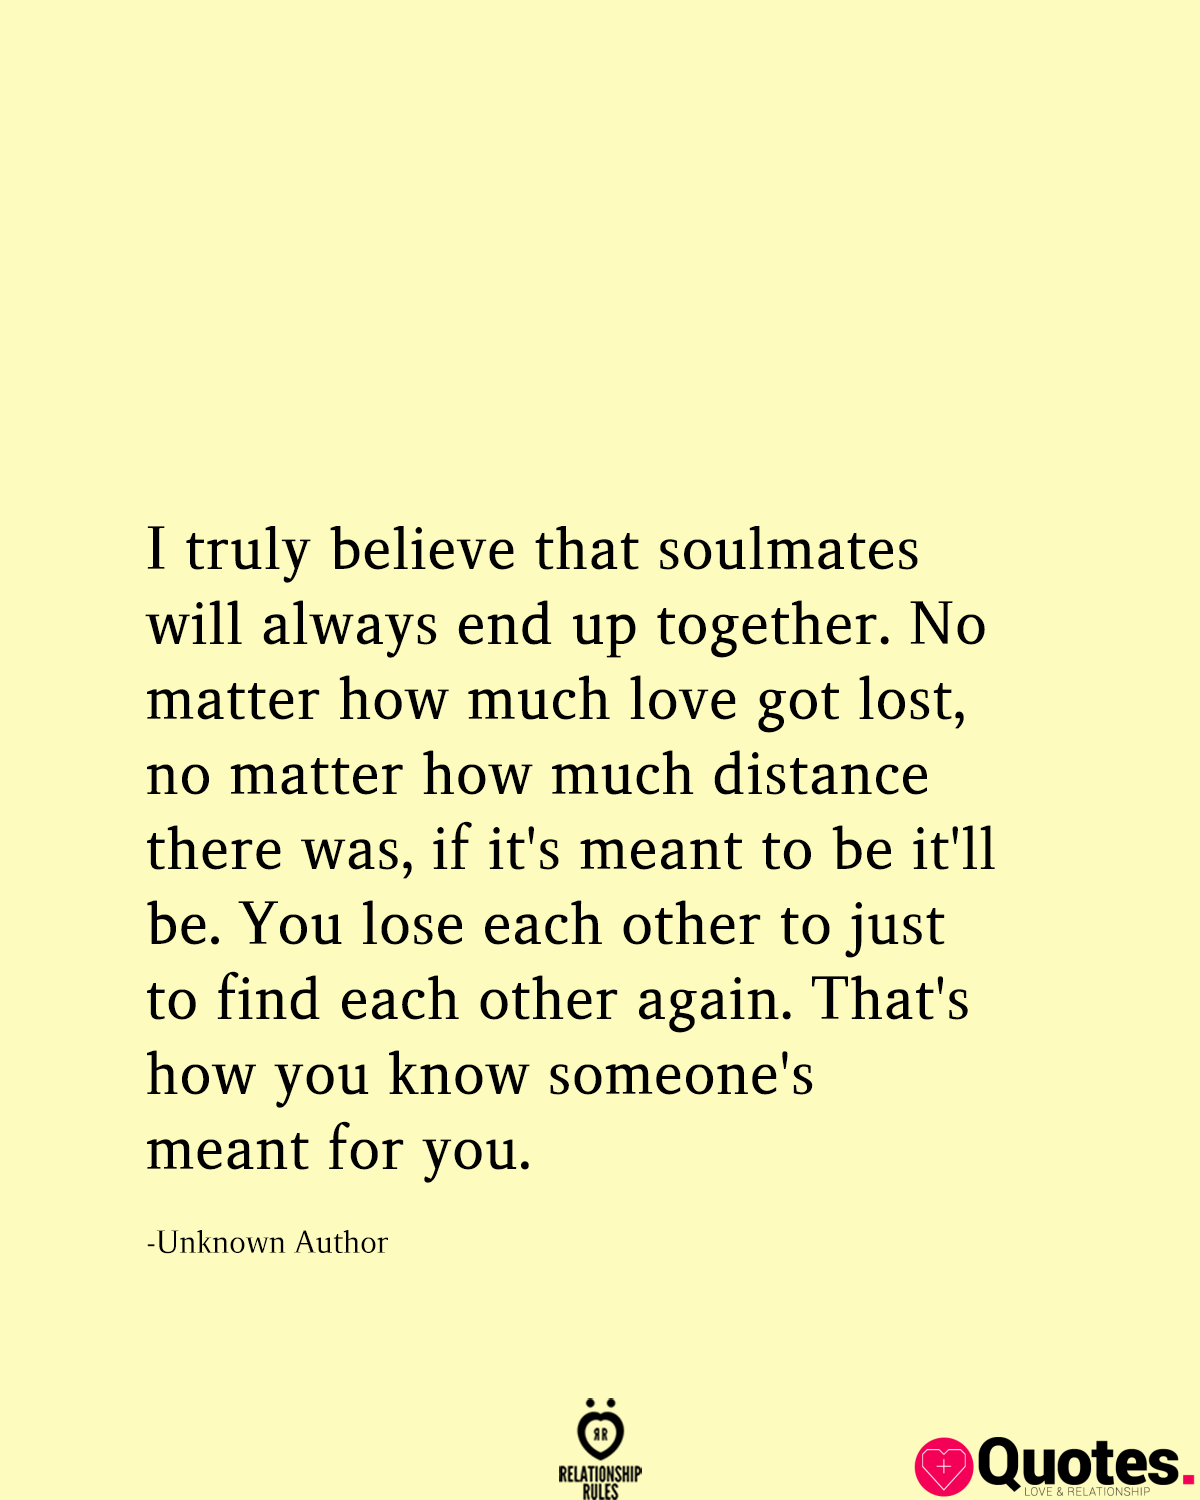 I Truly Believe That Soulmates Will Always End Up Together No Matter How Much Love Got Lost